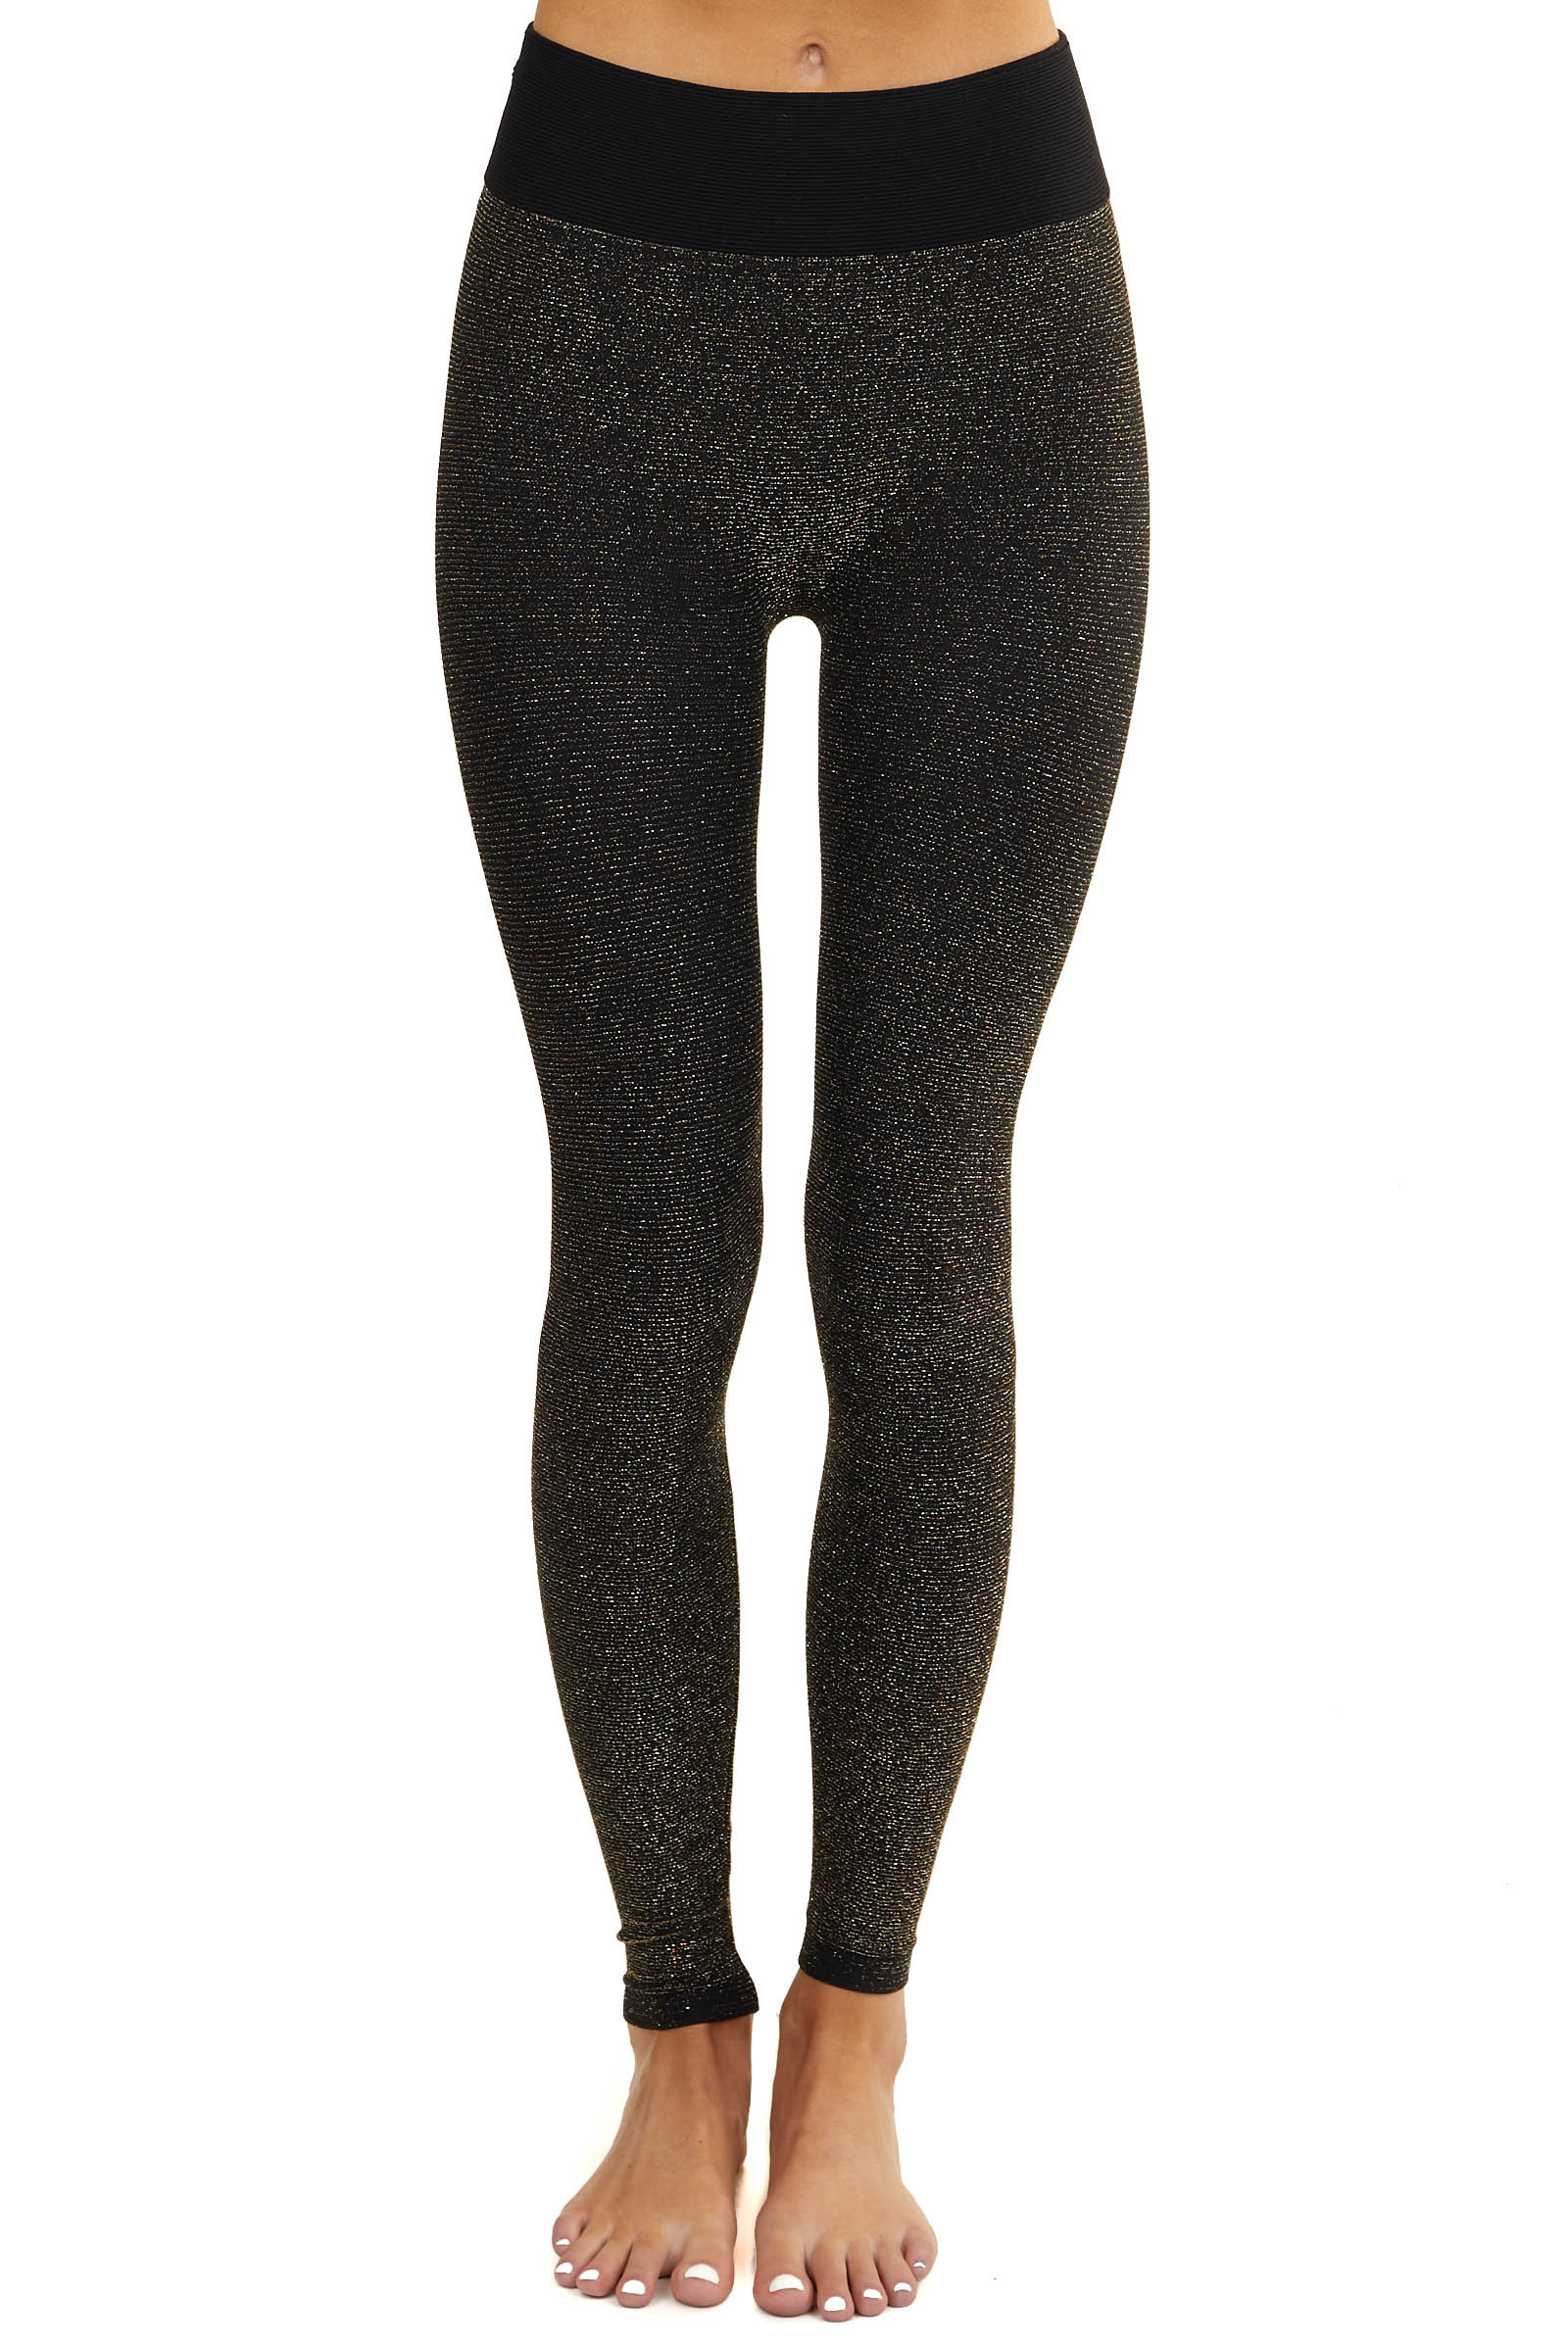 Black Stretchy Knit Leggings with Gold Threading